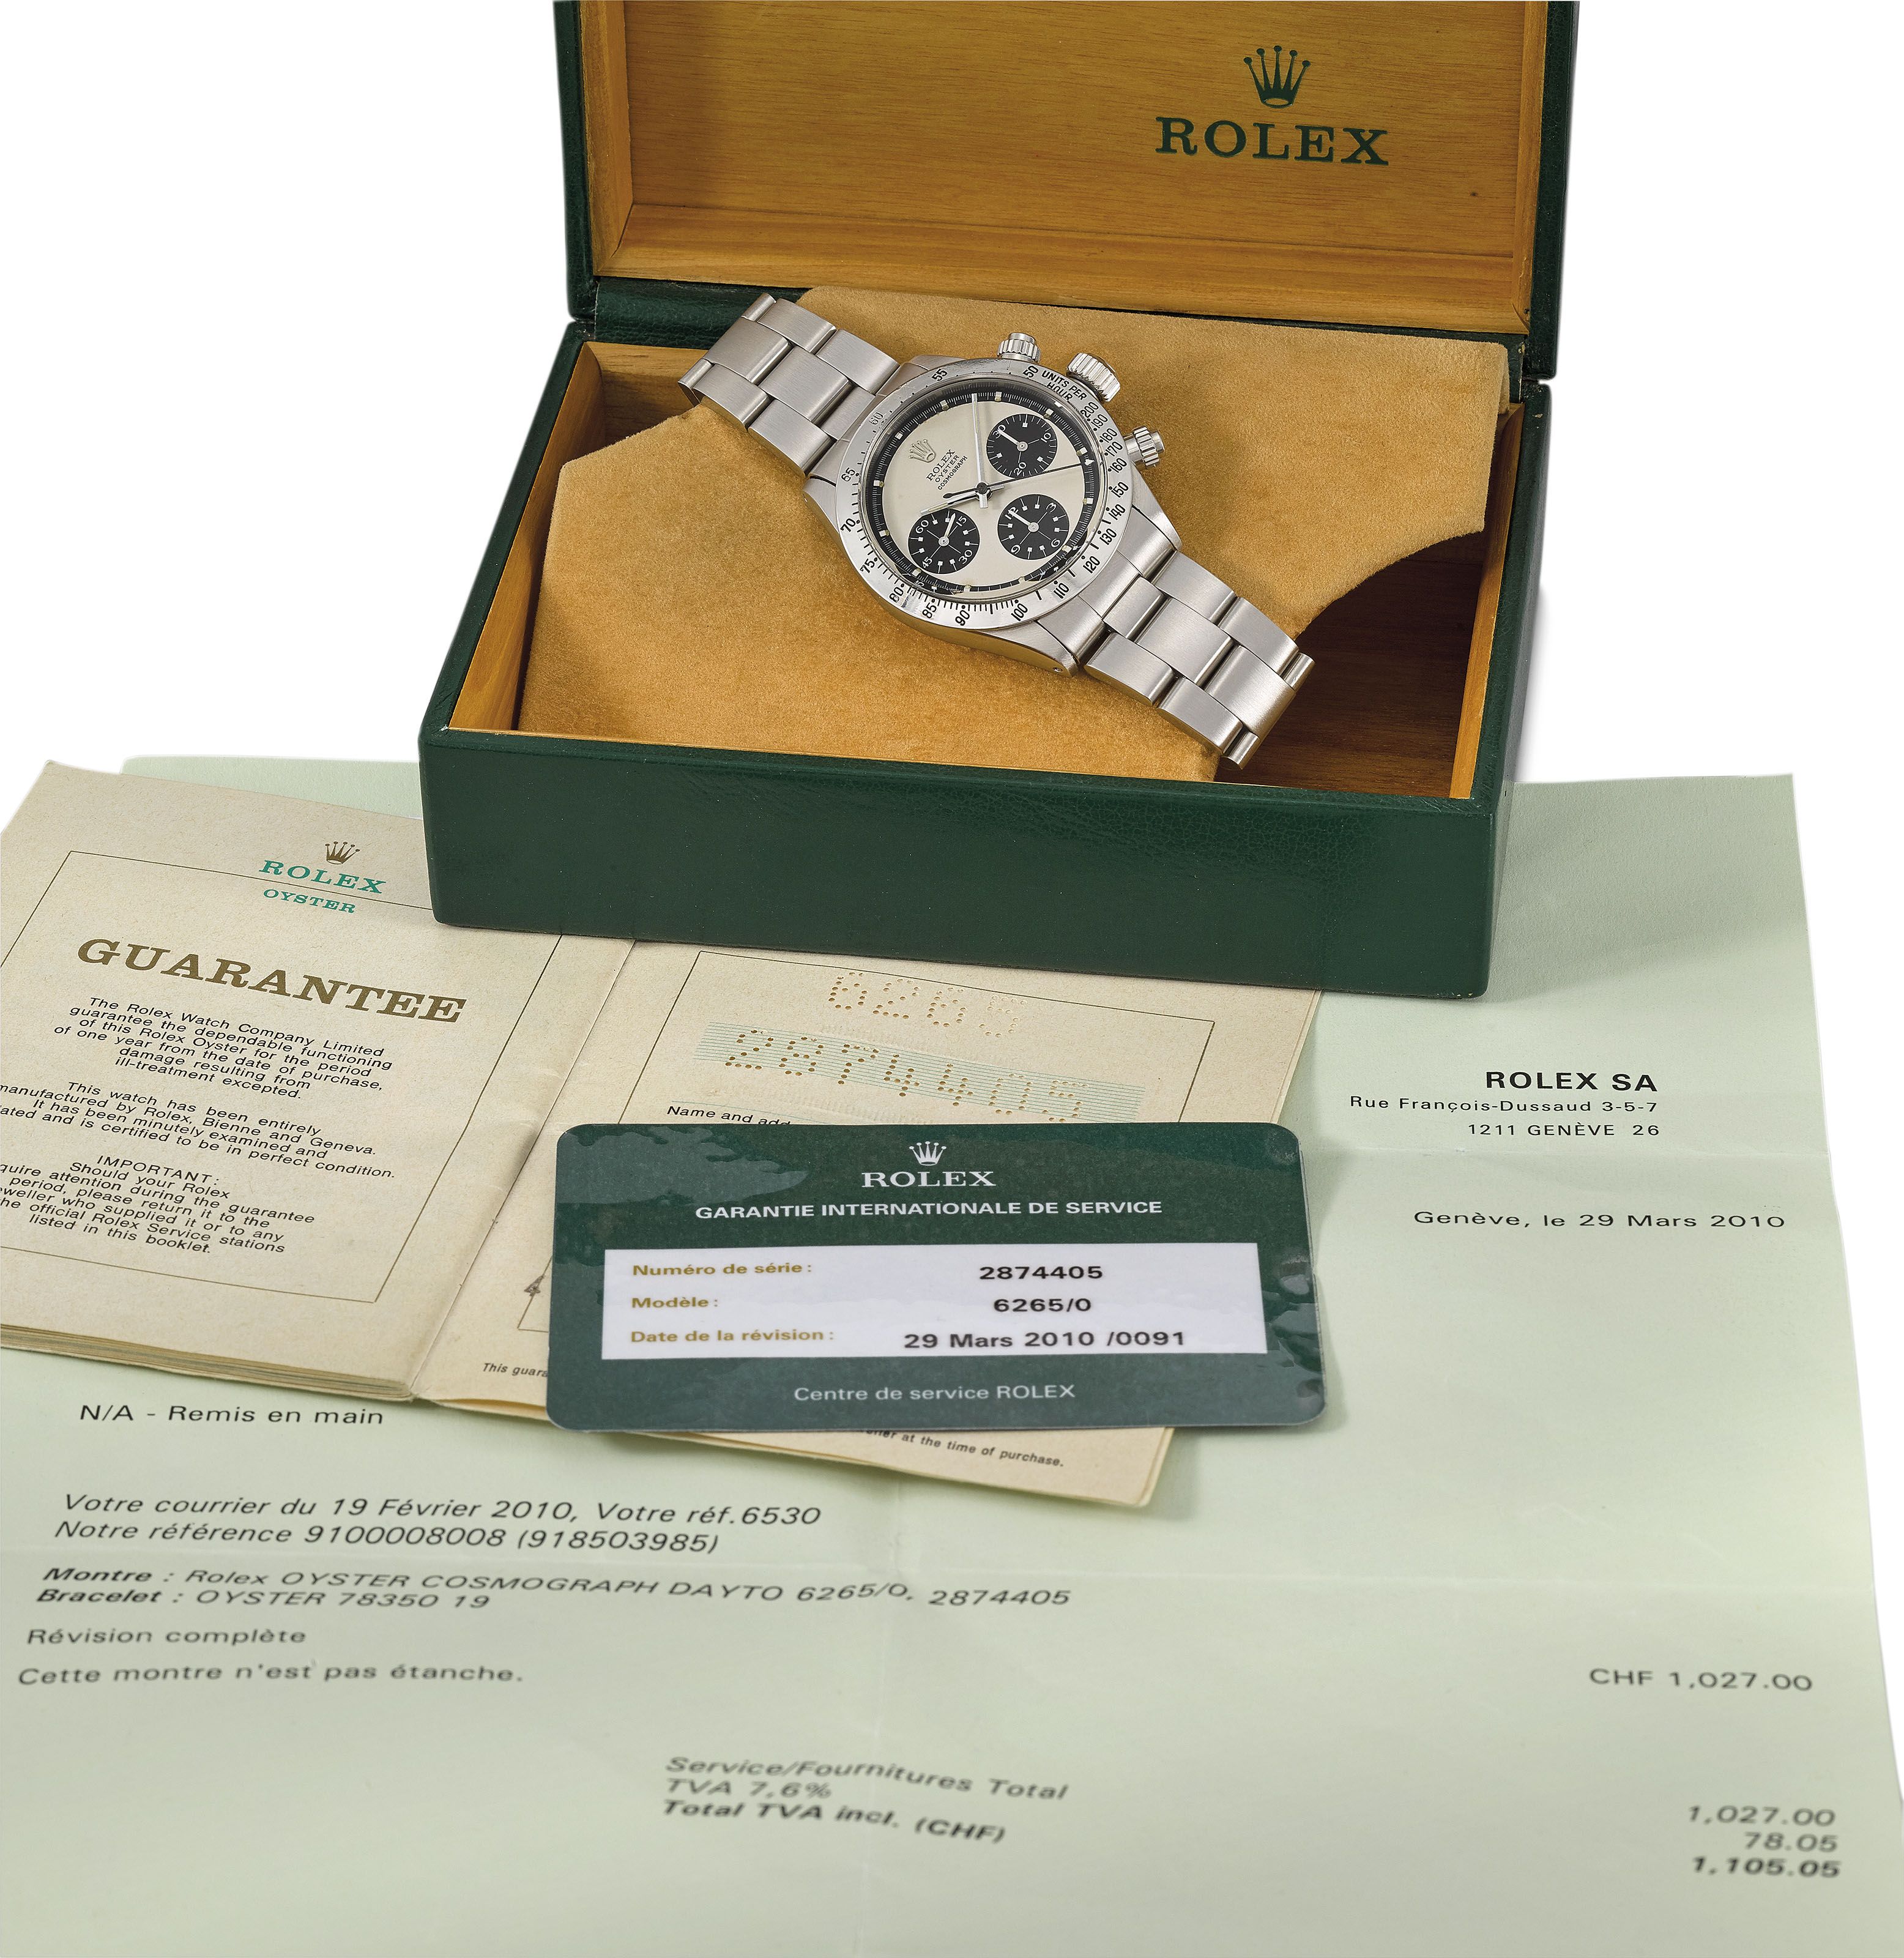 ROLEX. AN EXTREMLY FINE AND VERY RARE STAINLESS STEEL CHRONOGRAPH...